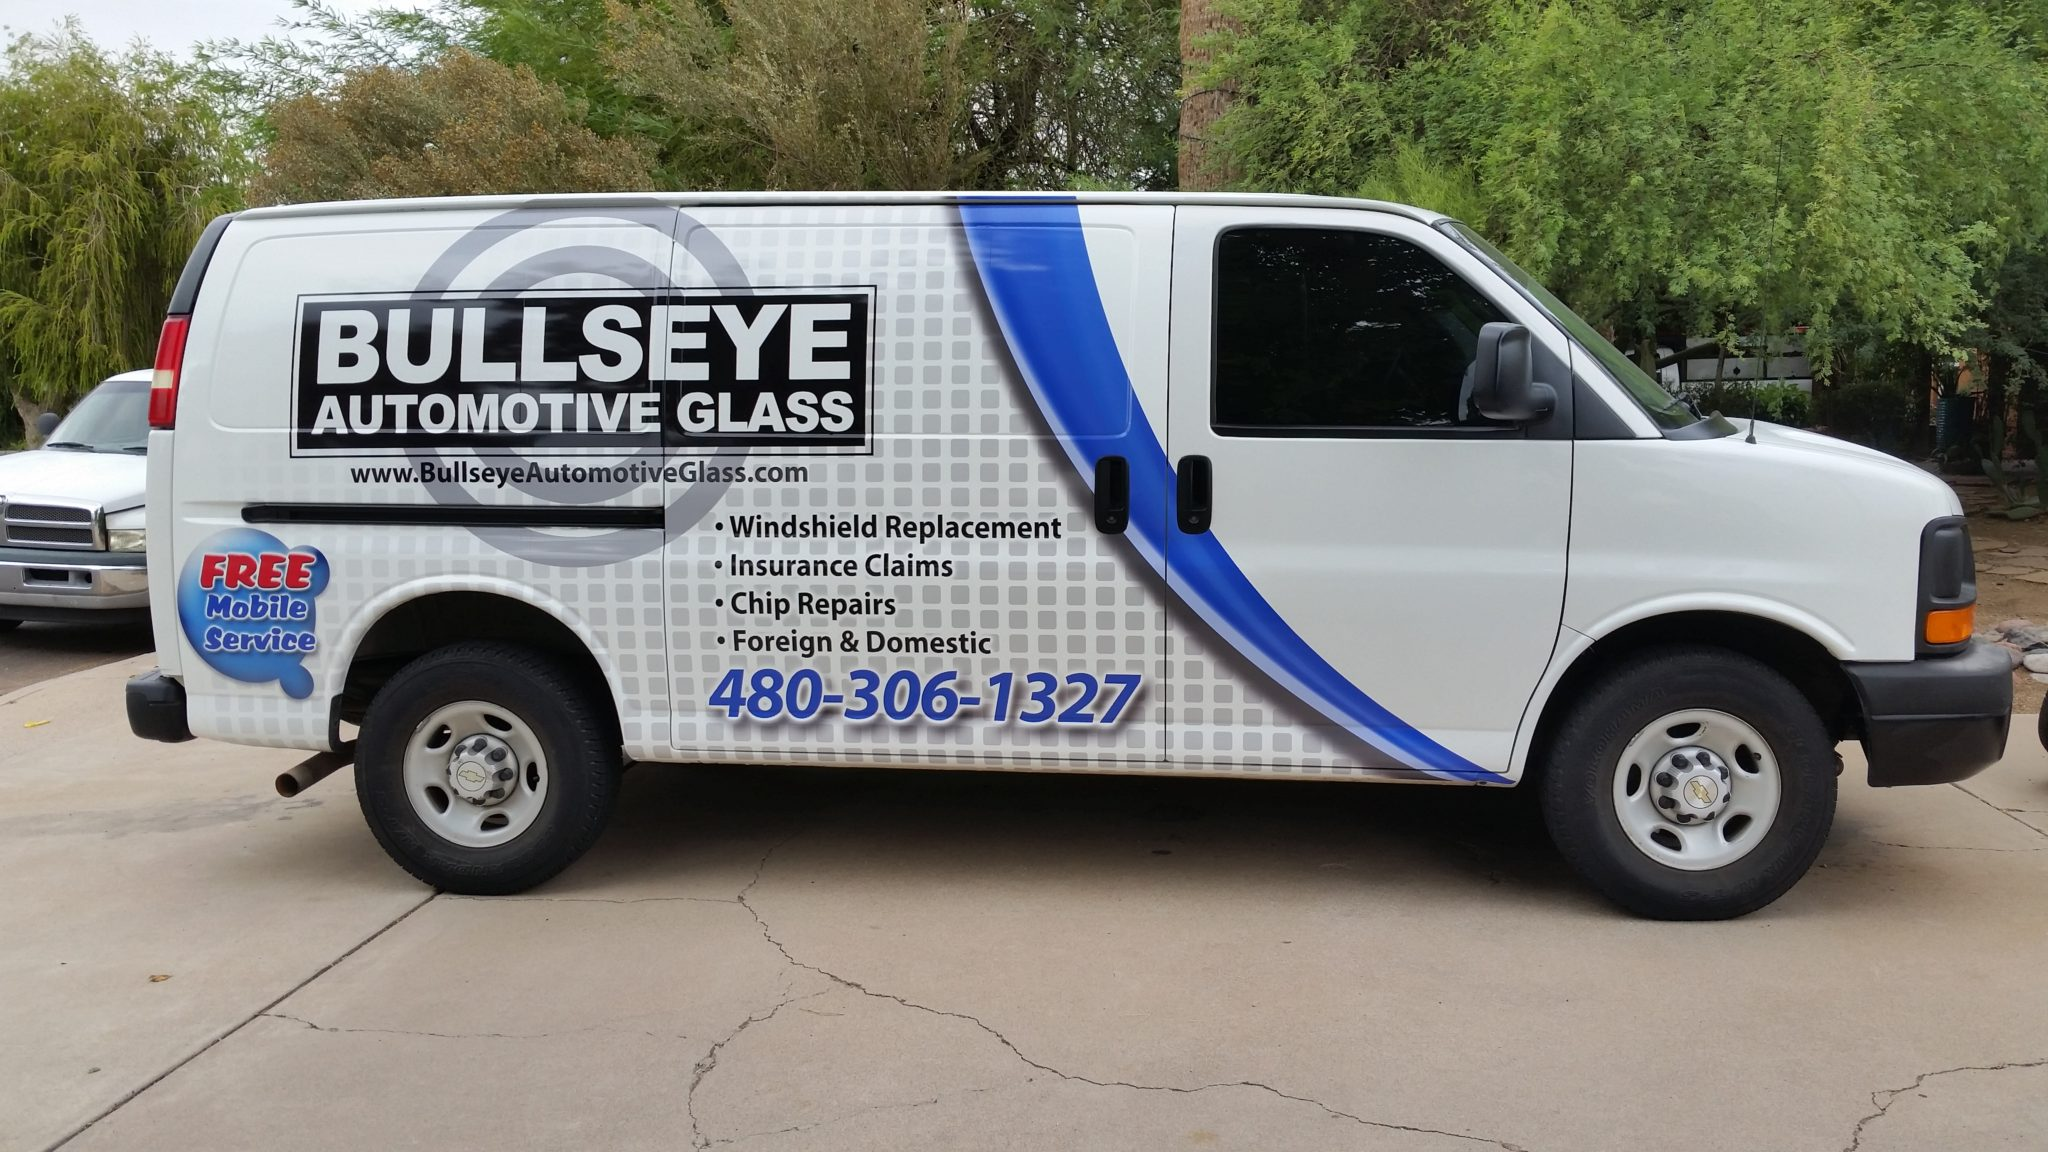 Auto Glass Repair Quotes How To Get An Auto Glass Replacement And Windshield Repair Quote